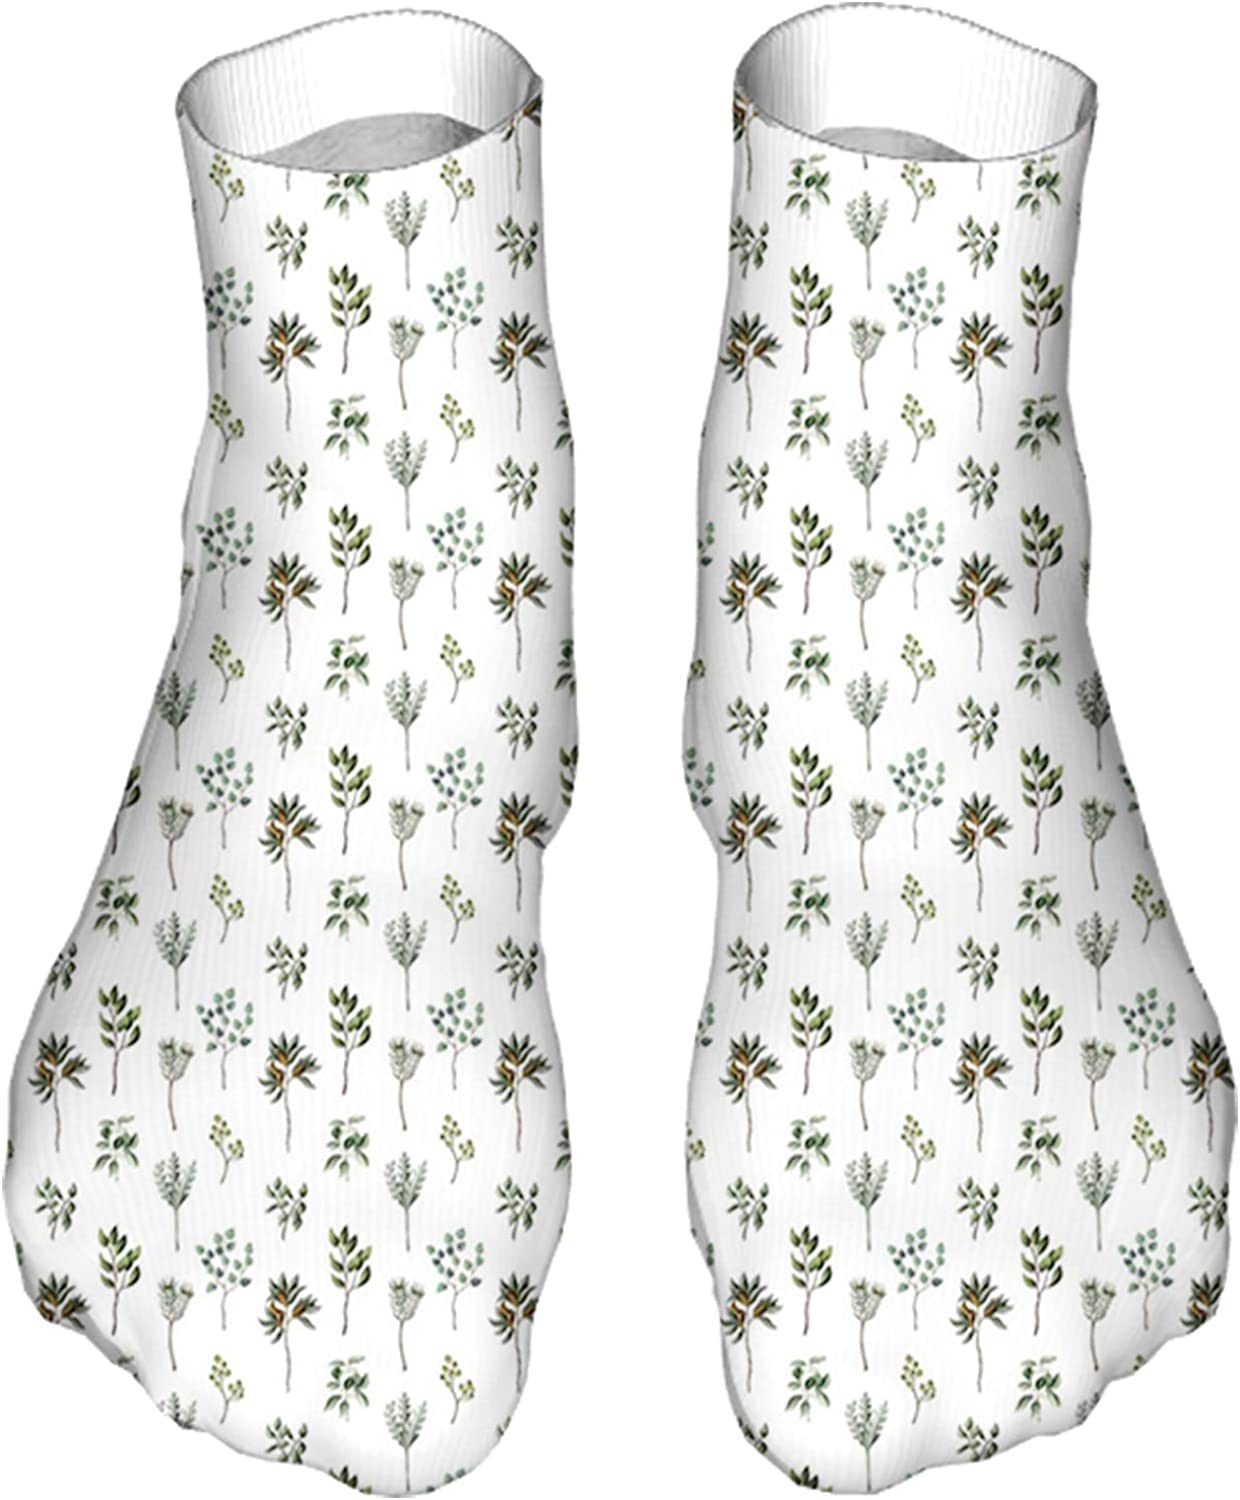 Men's and Women's Fun Socks Printed Cool Novelty Funny Socks,Illustration of Various Leaves and Plantation Nature